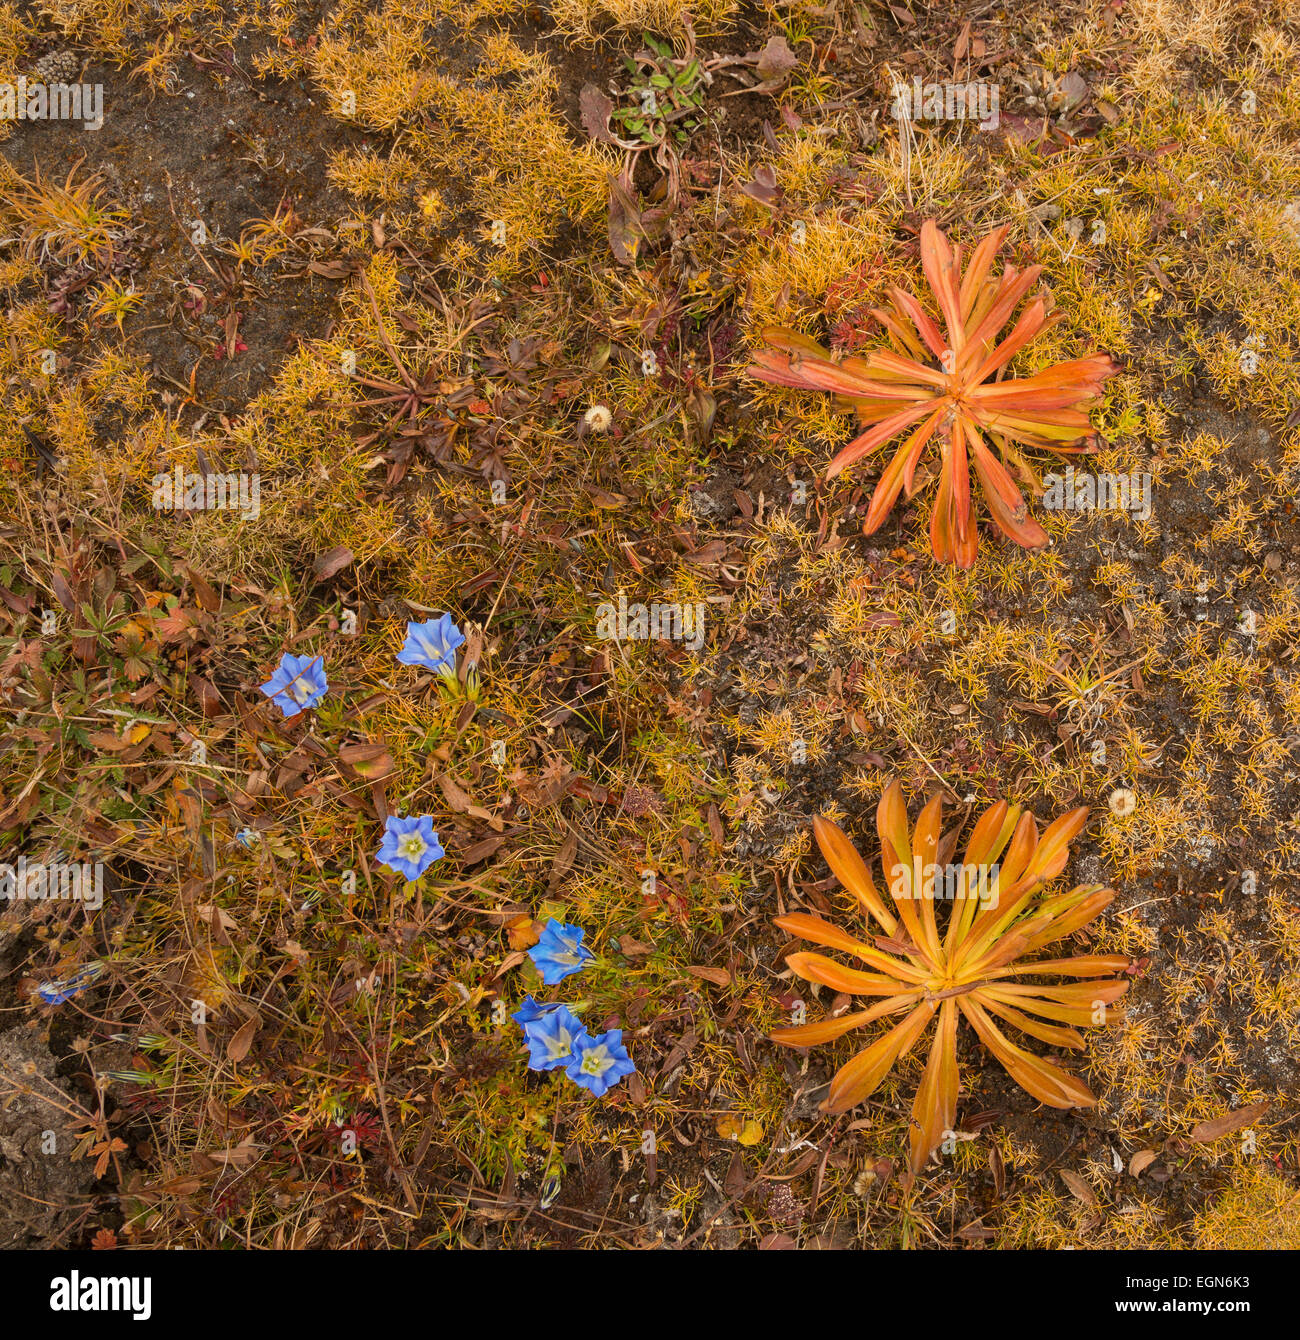 BU00221-00...BHUTAN - Gentians and other small plants growing at 15,000 feet in the Butanese Himalayas. - Stock Image